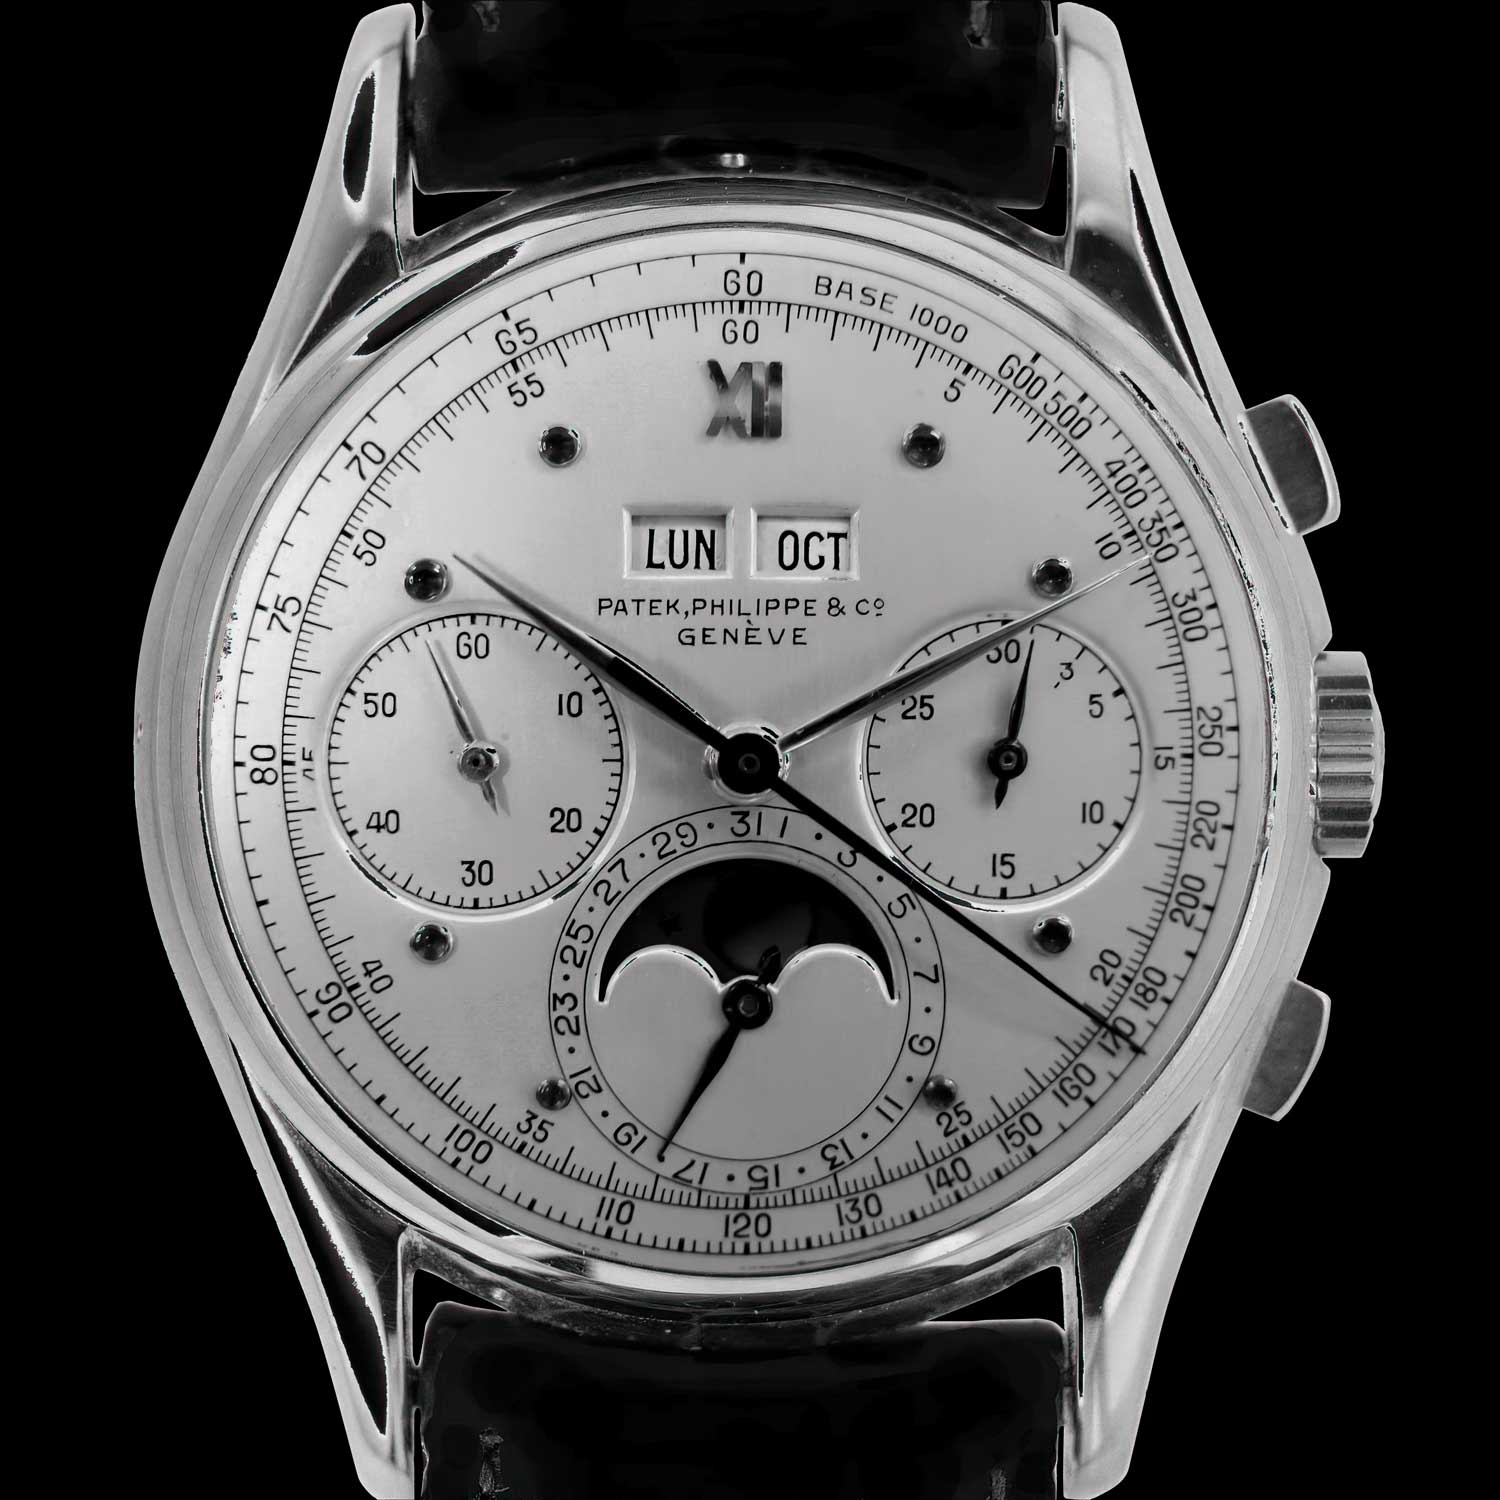 The unique Patek Philippe ref. 1527 commissioned by Charles Stern with a unique dial (Photo: Christie's)